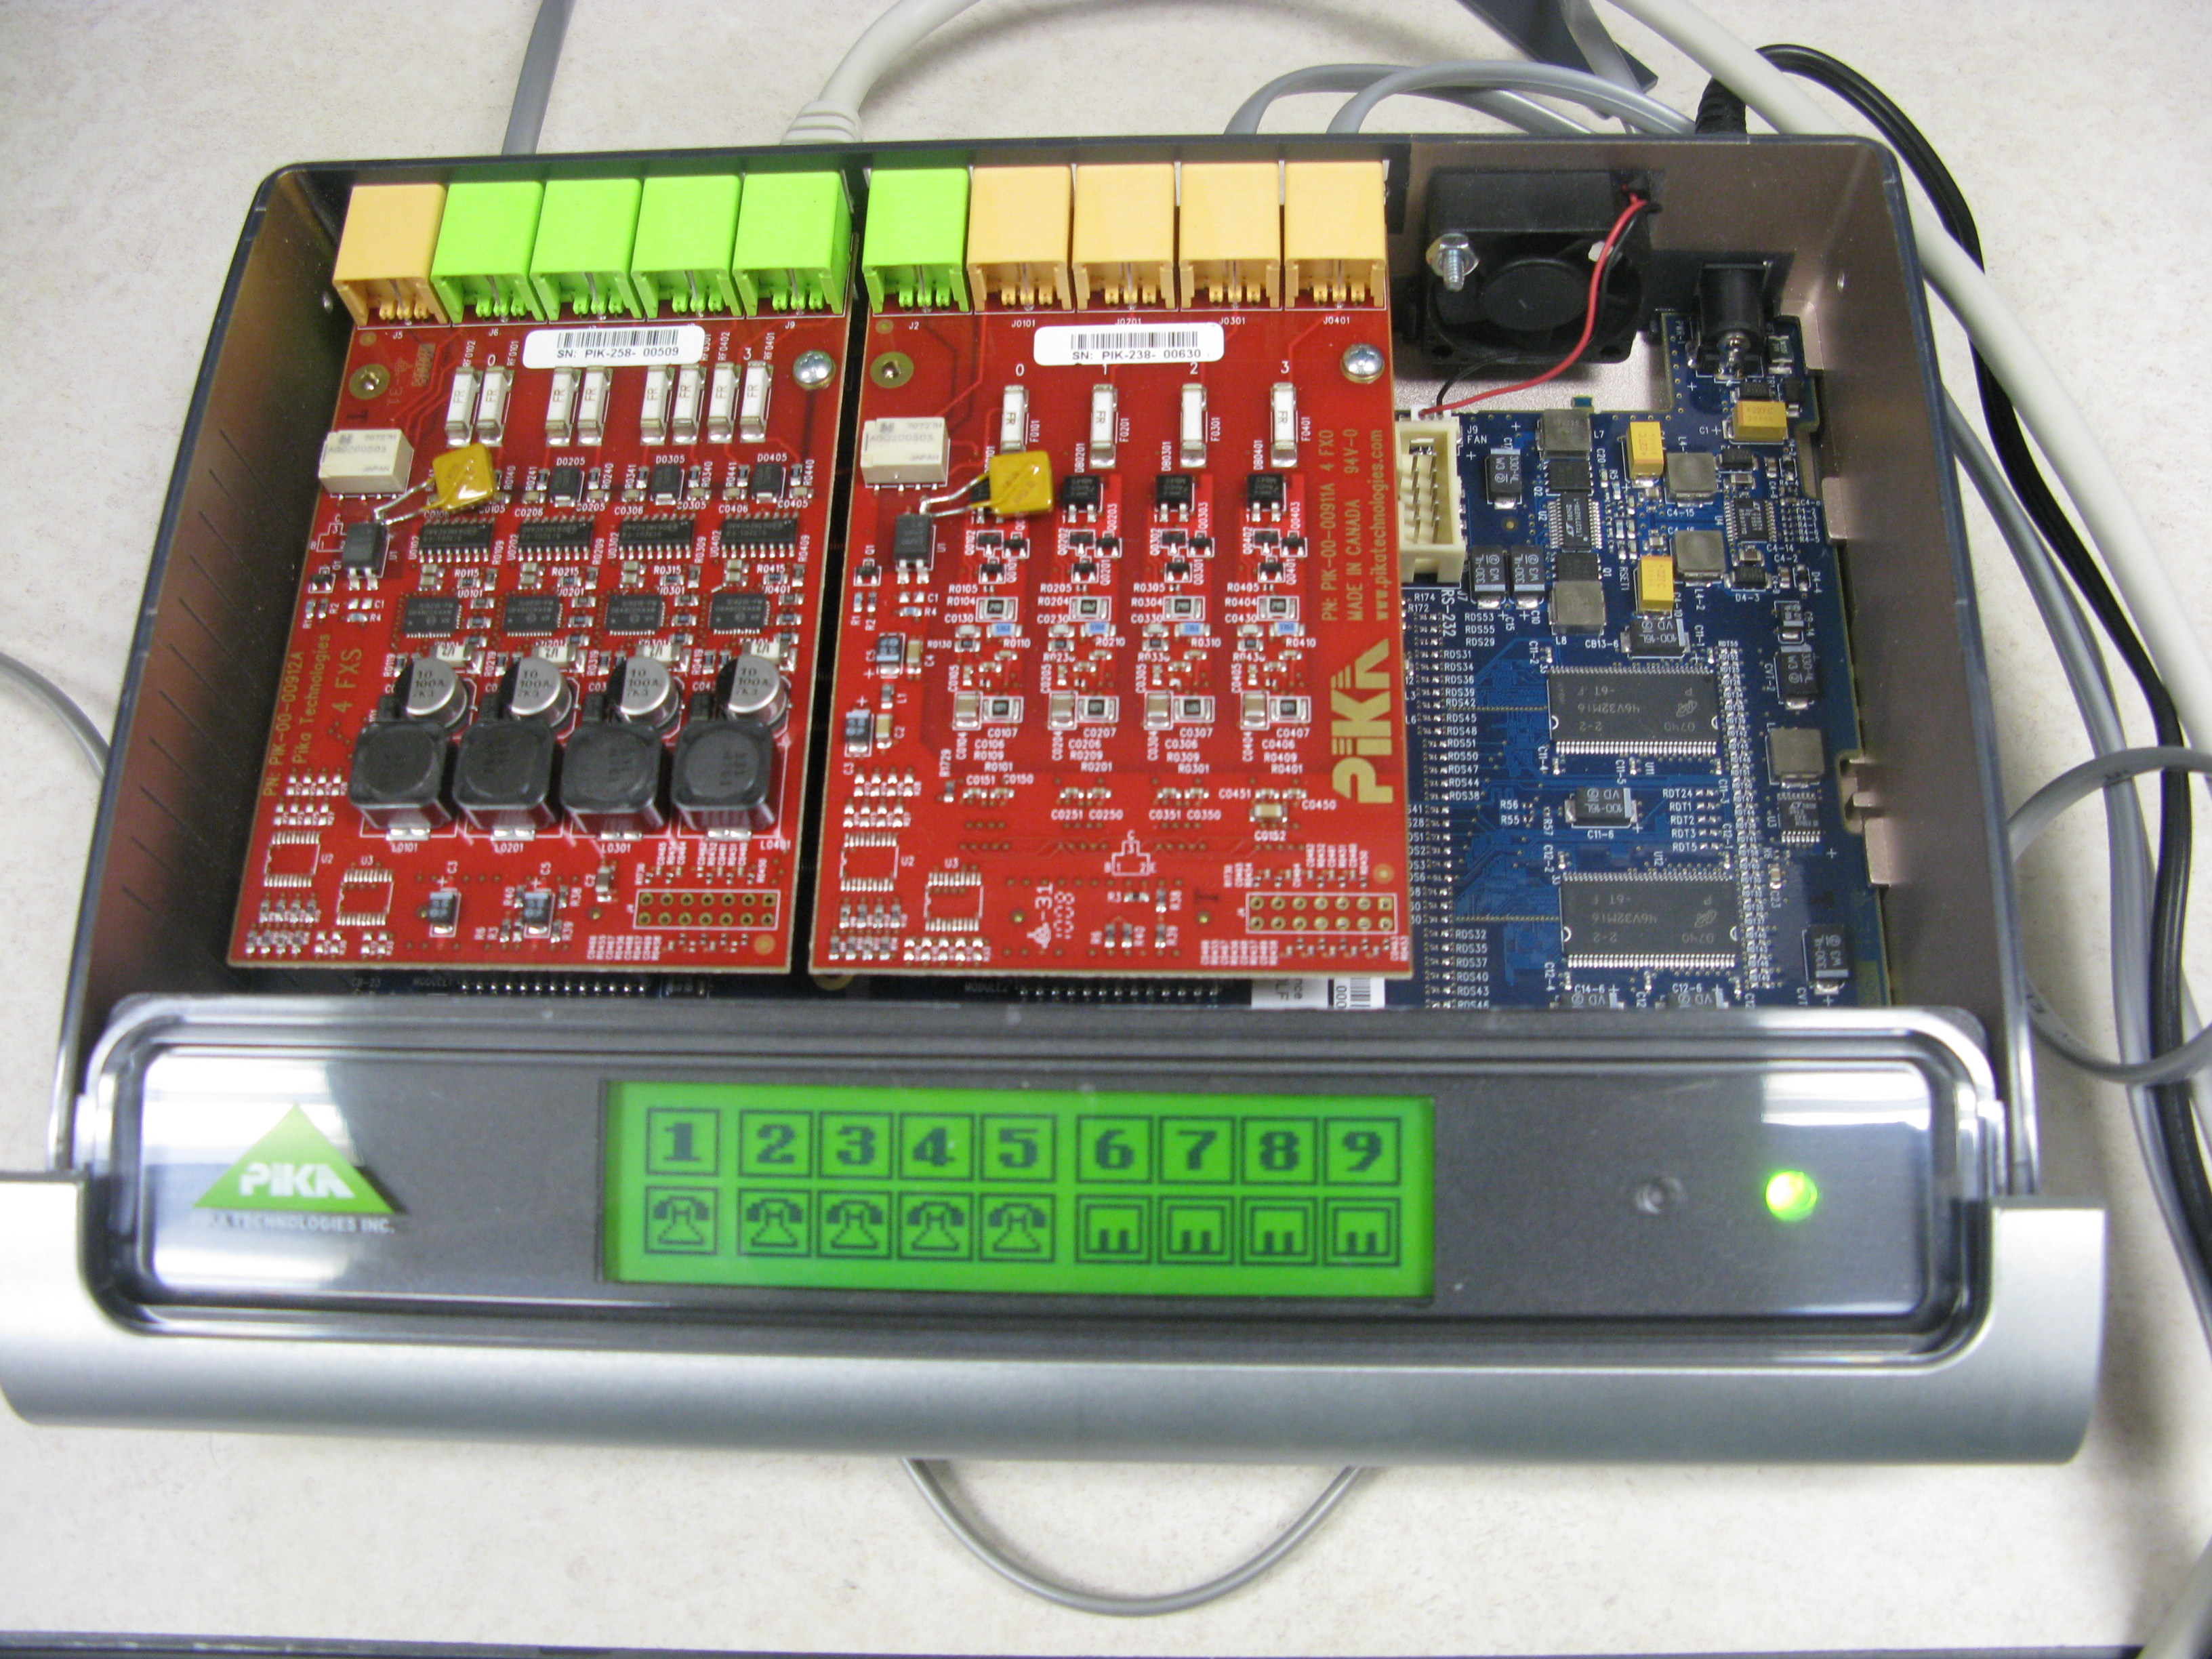 PIKA WARP Appliance for Asterisk Review